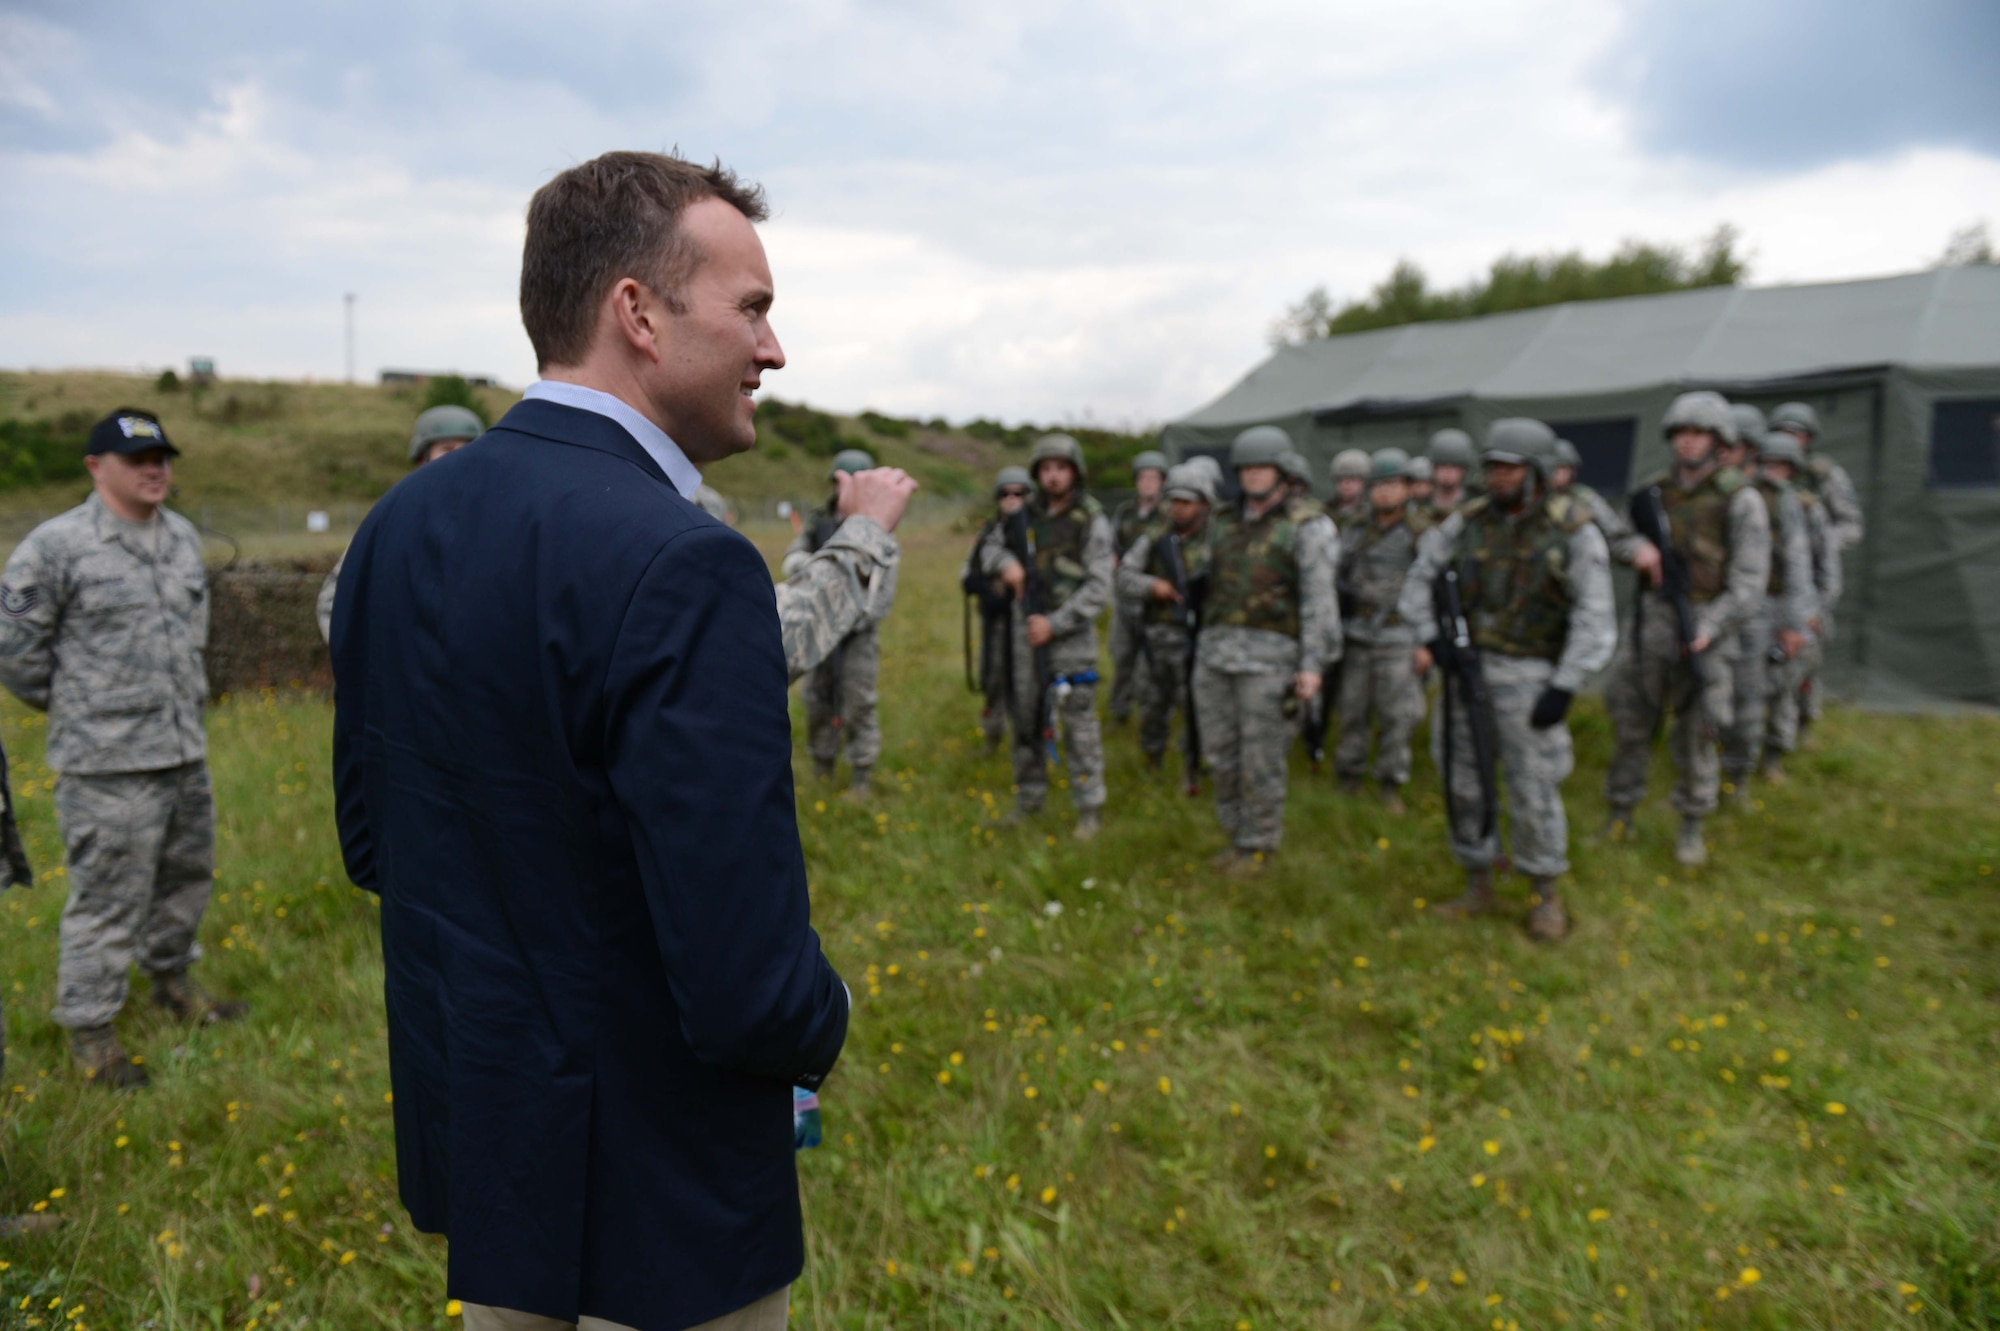 Under Secretary of the Air Force Eric Fanning speaks to Airmen assigned to the 606th Air Control Squadron during a base familiarization visit Aug. 5, 2014, on Spangdahlem Air Base, Germany. The 606th ACS demonstrated their combat readiness capabilities through a display of training operations. (U.S. Air Force photo/Senior Airman Gustavo)